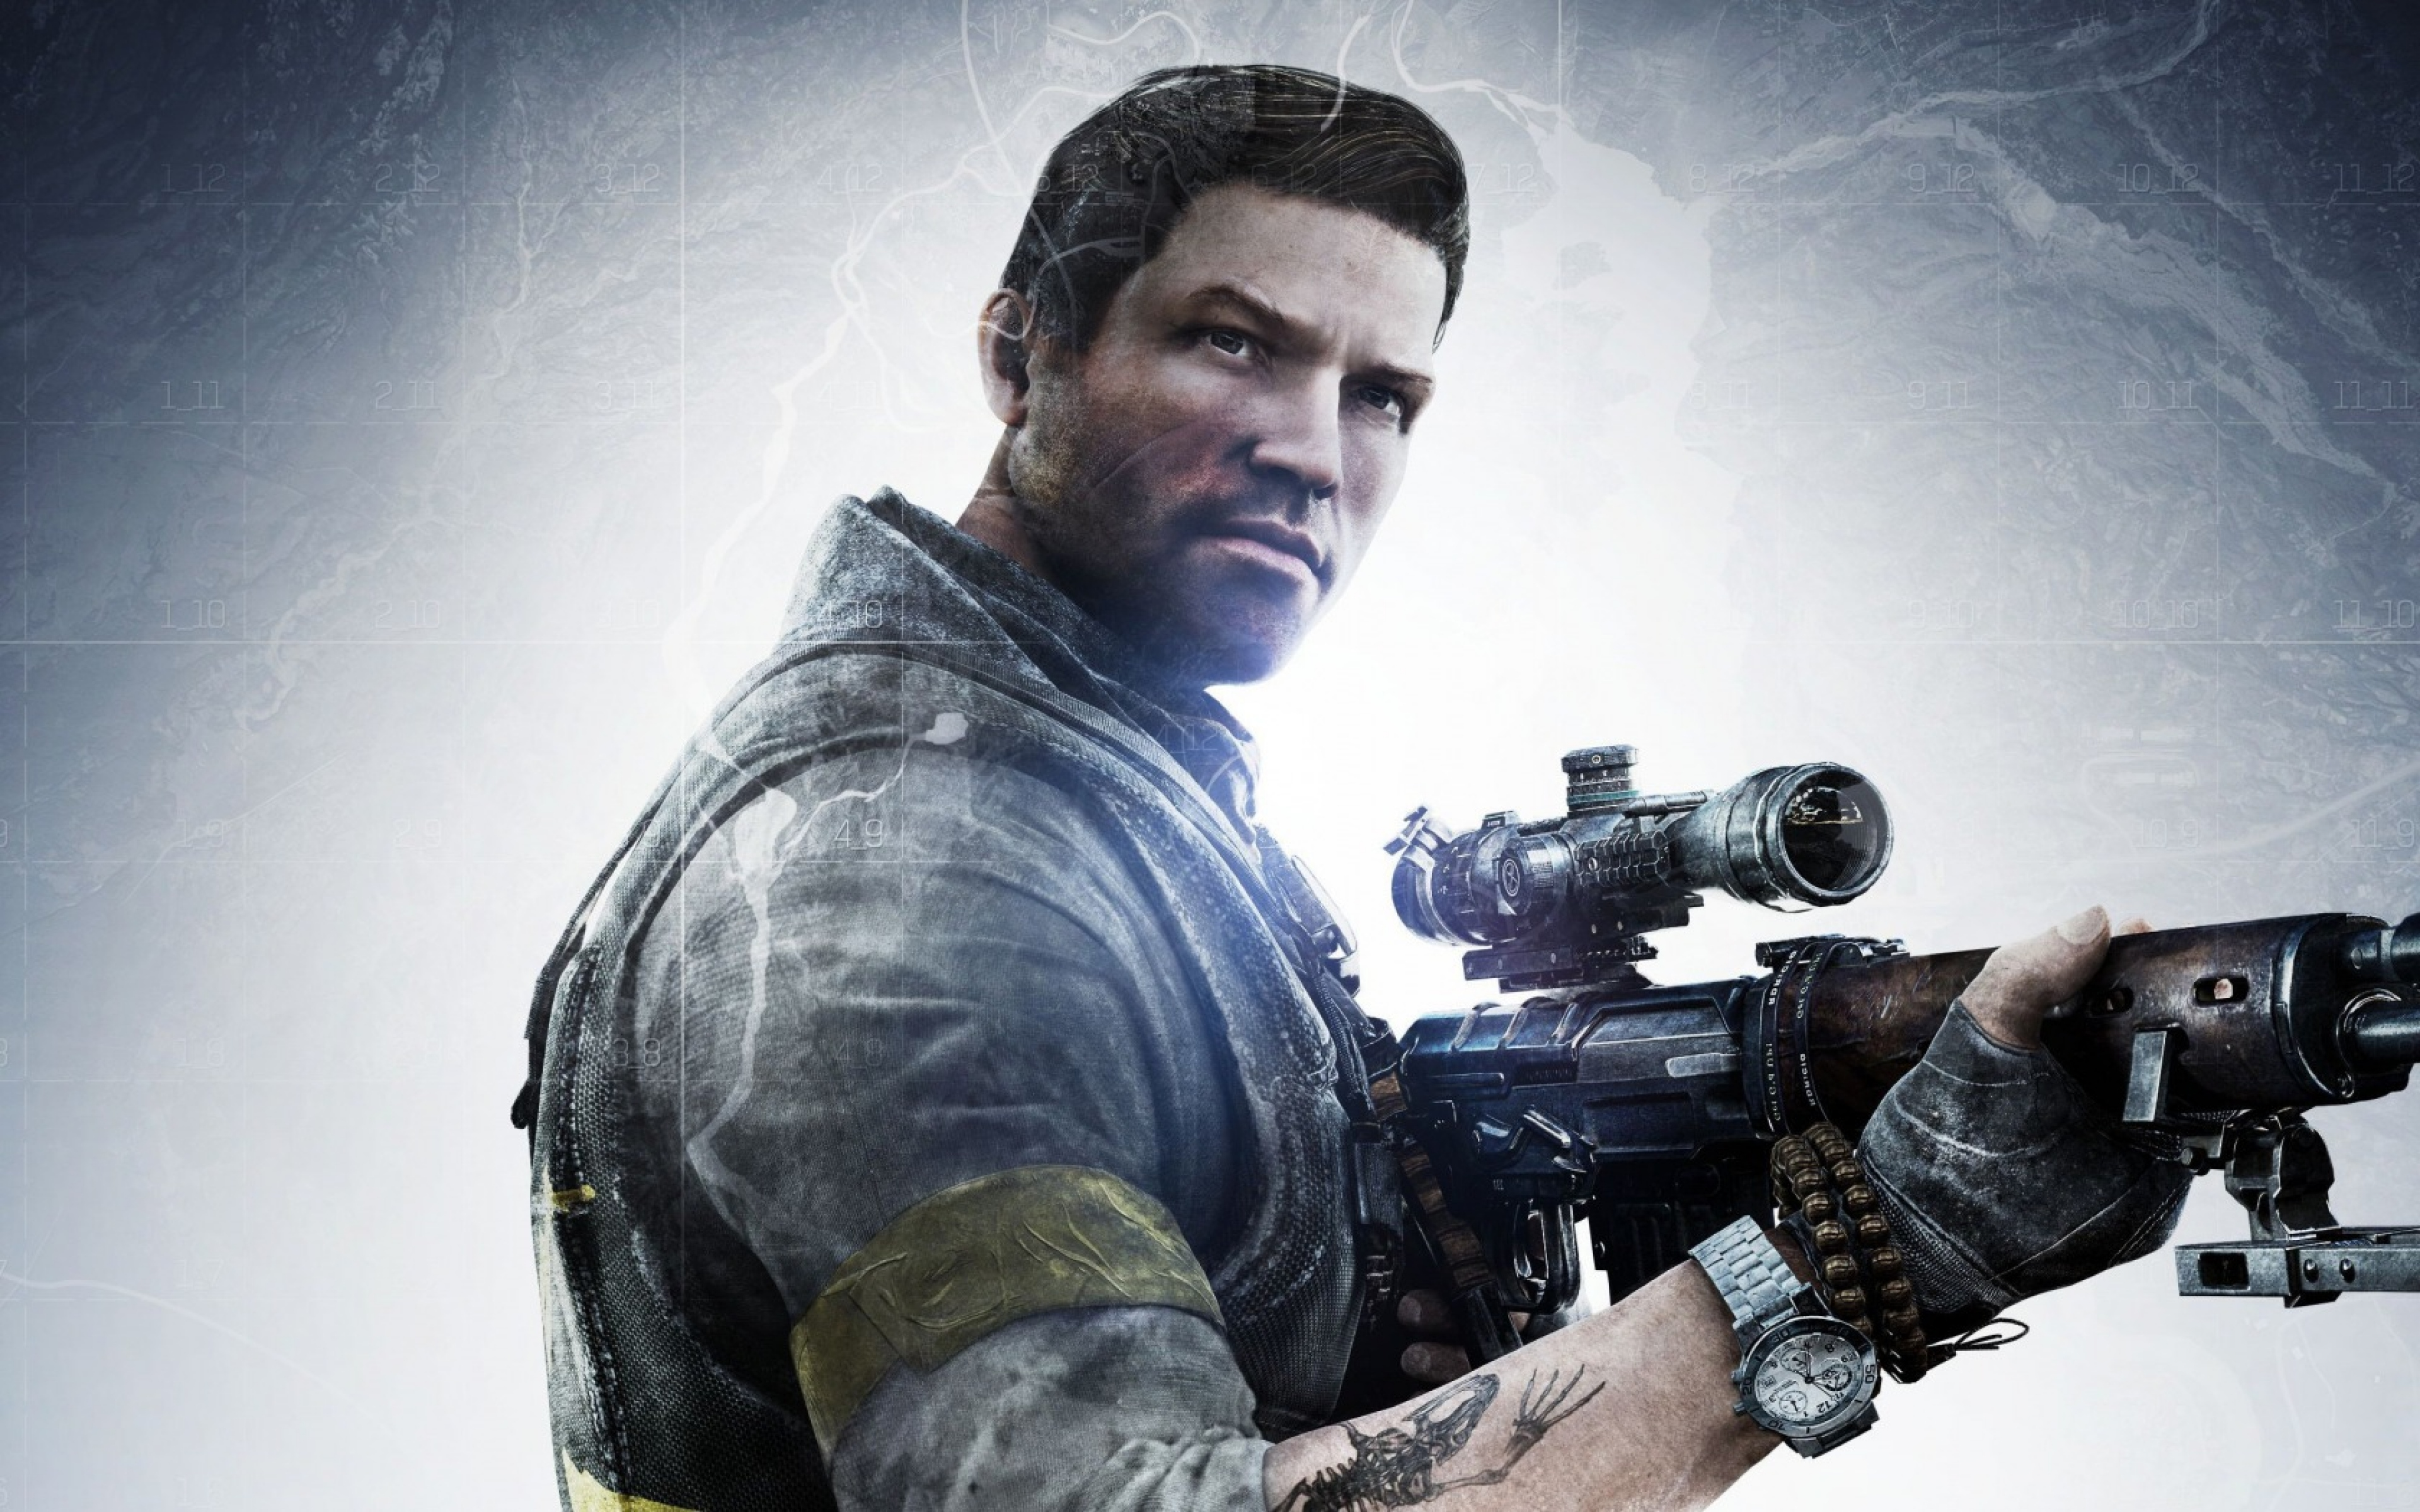 sniper, ghost warrior 3, weapon